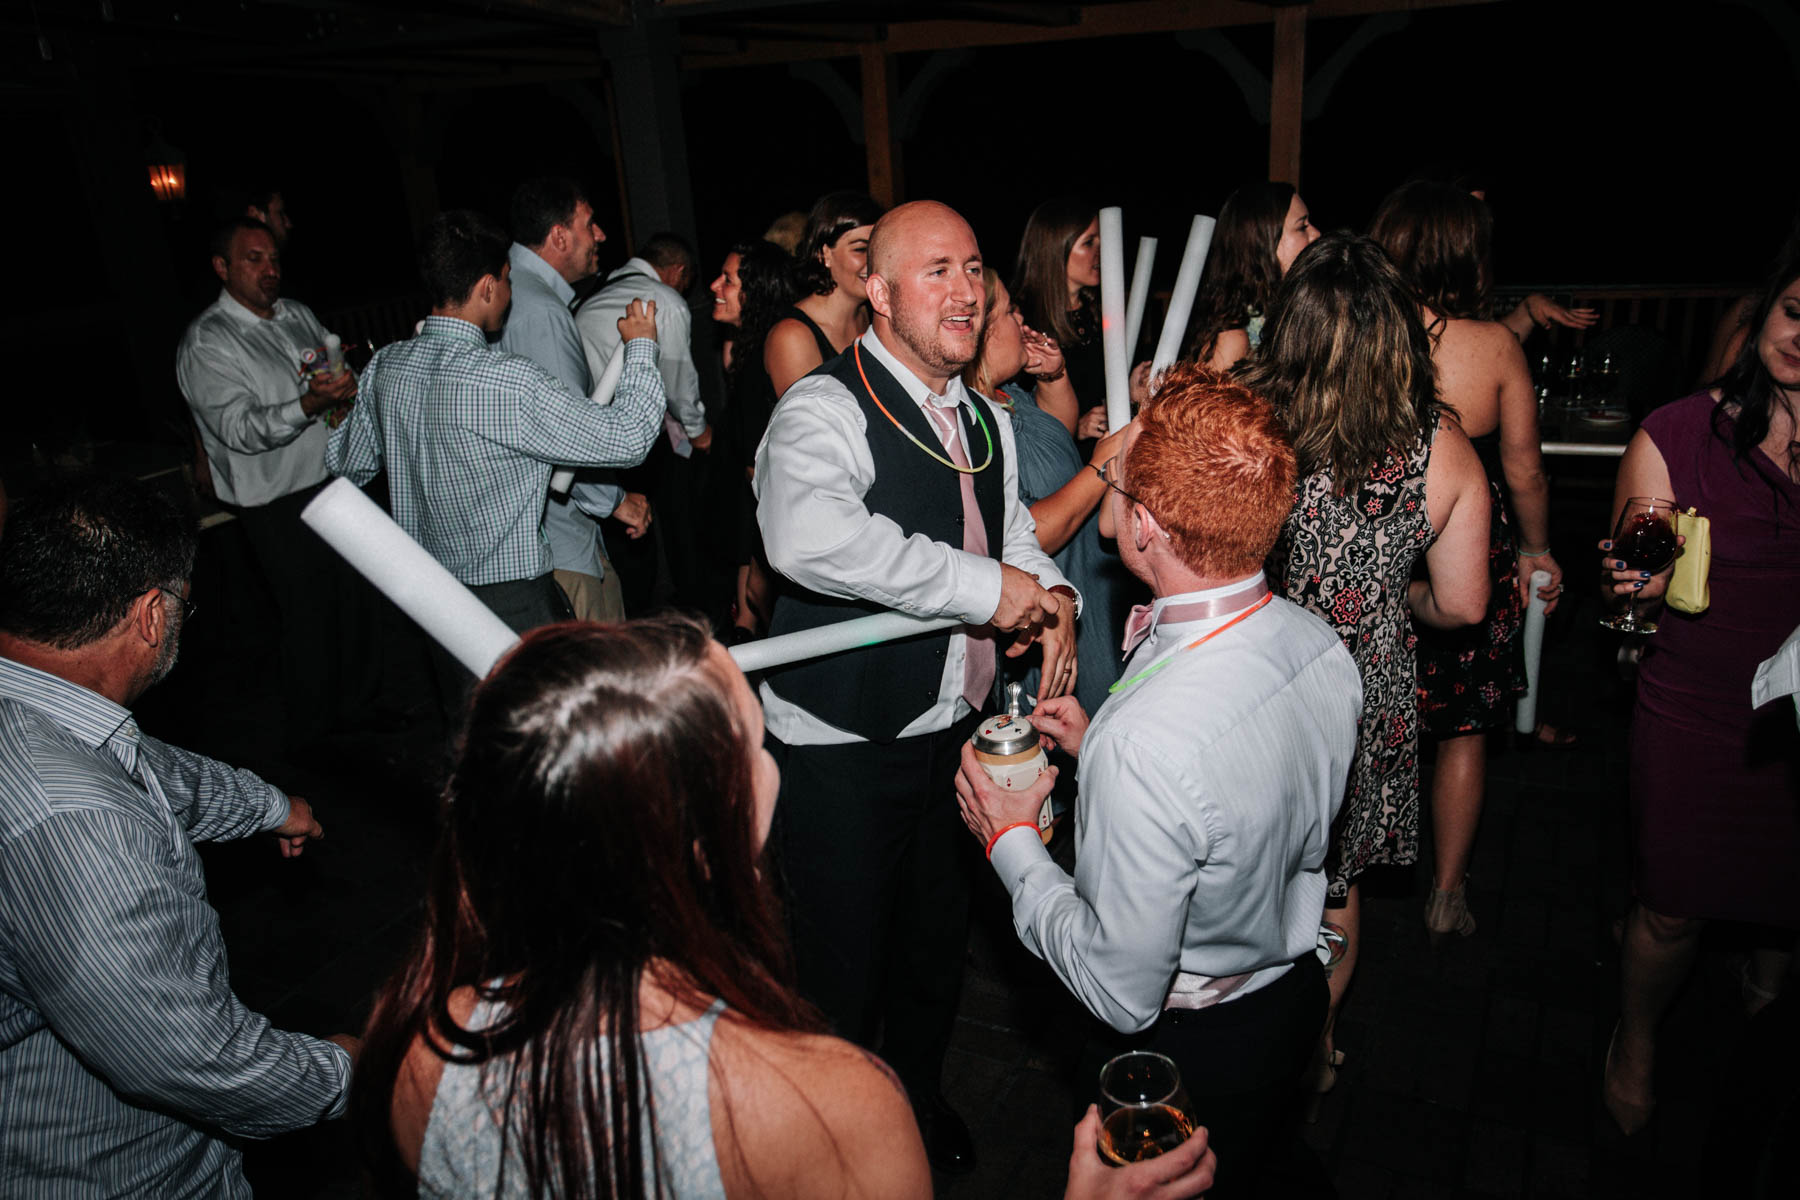 candid-wedding-pictures.jpg